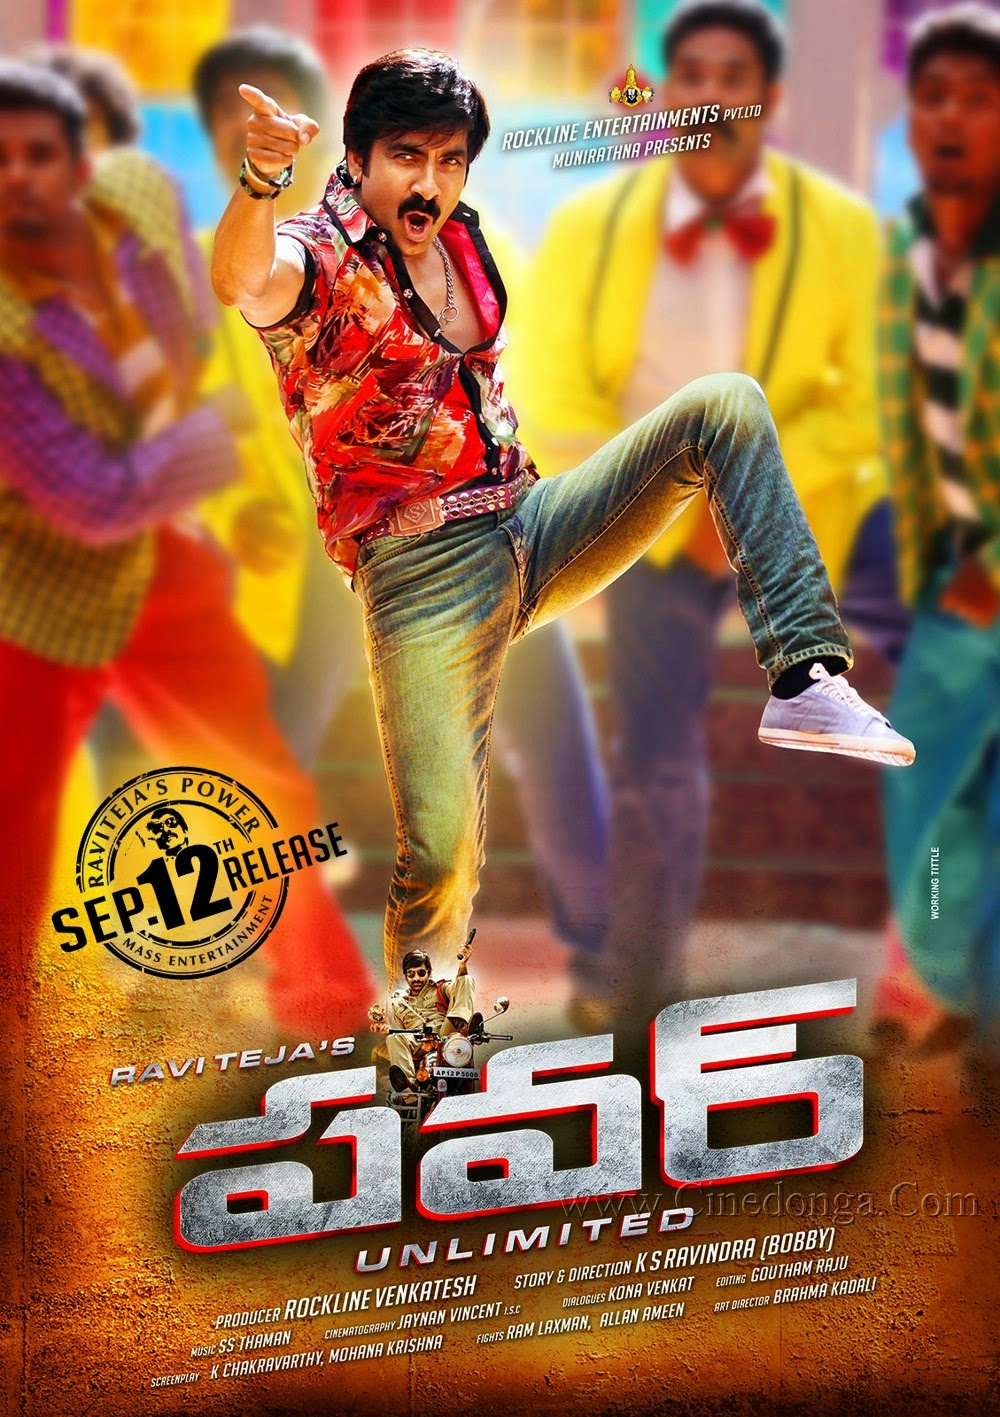 ravi teja power movie latest hd exvlusive wallpapers/movie posters